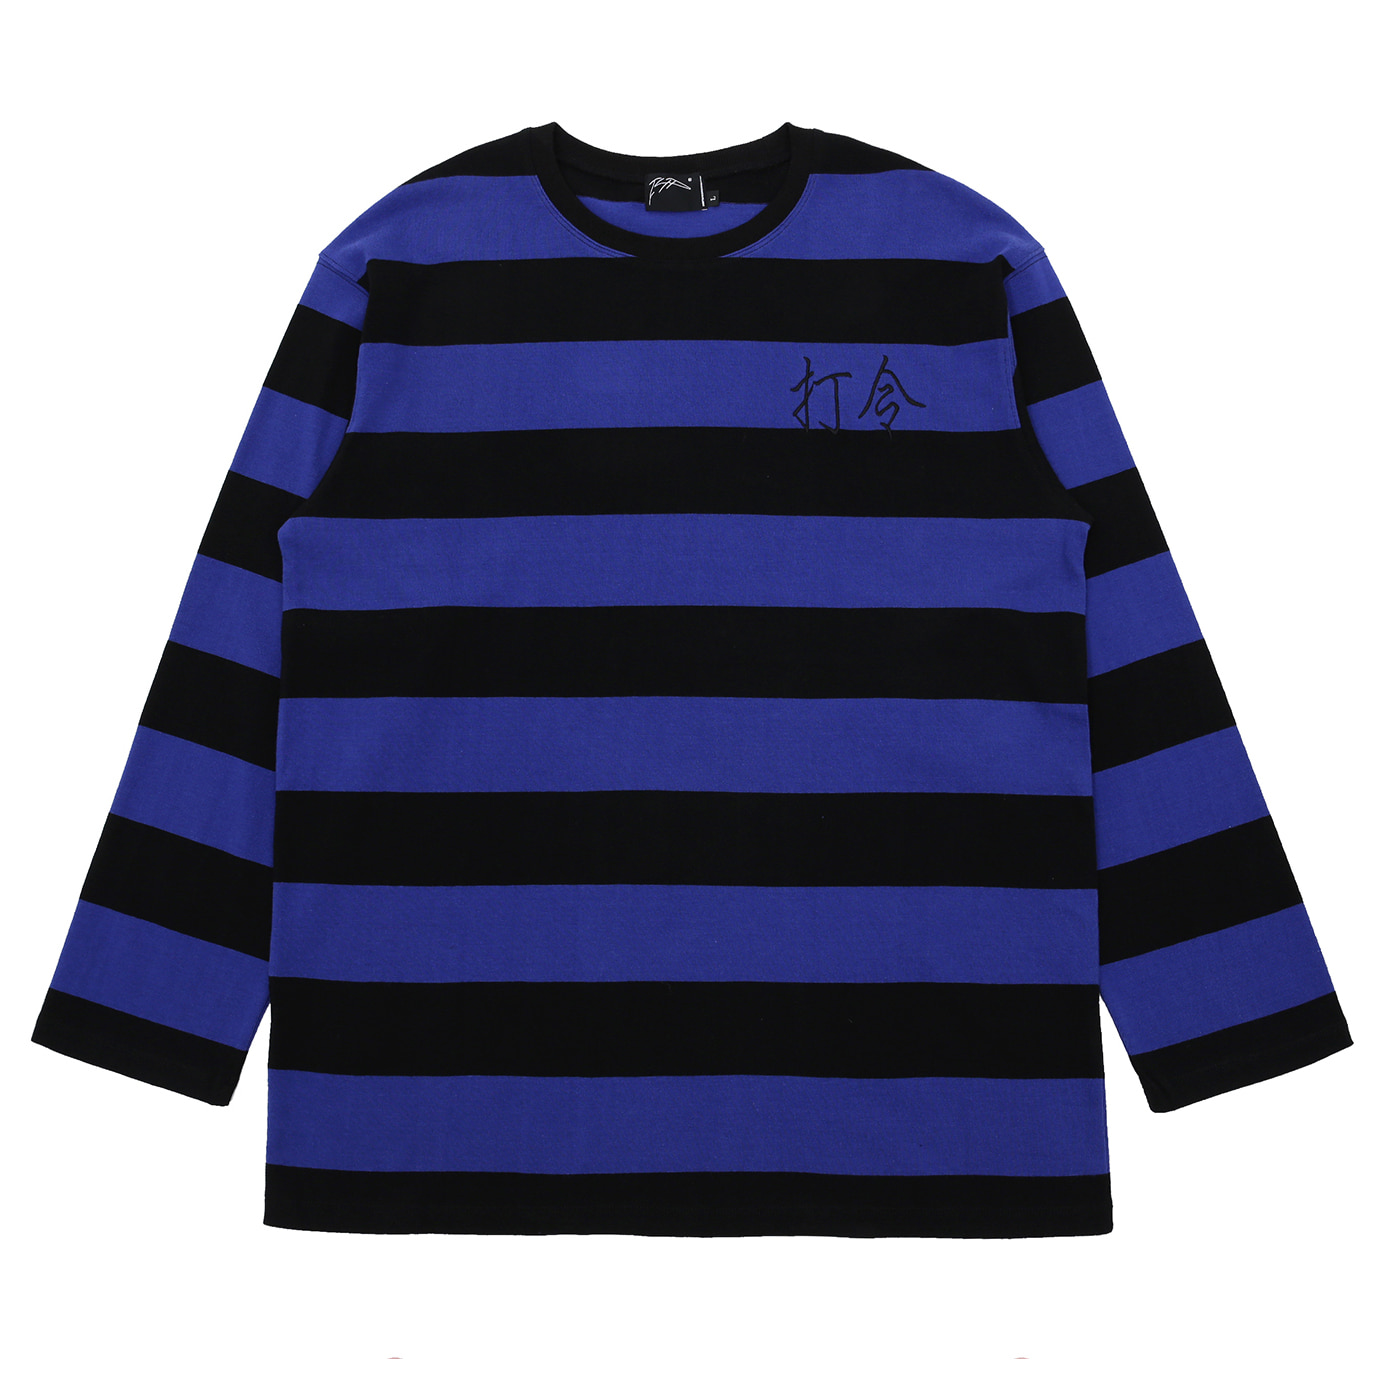 [I4P]Poong Ark Stripe T-shirt Blue